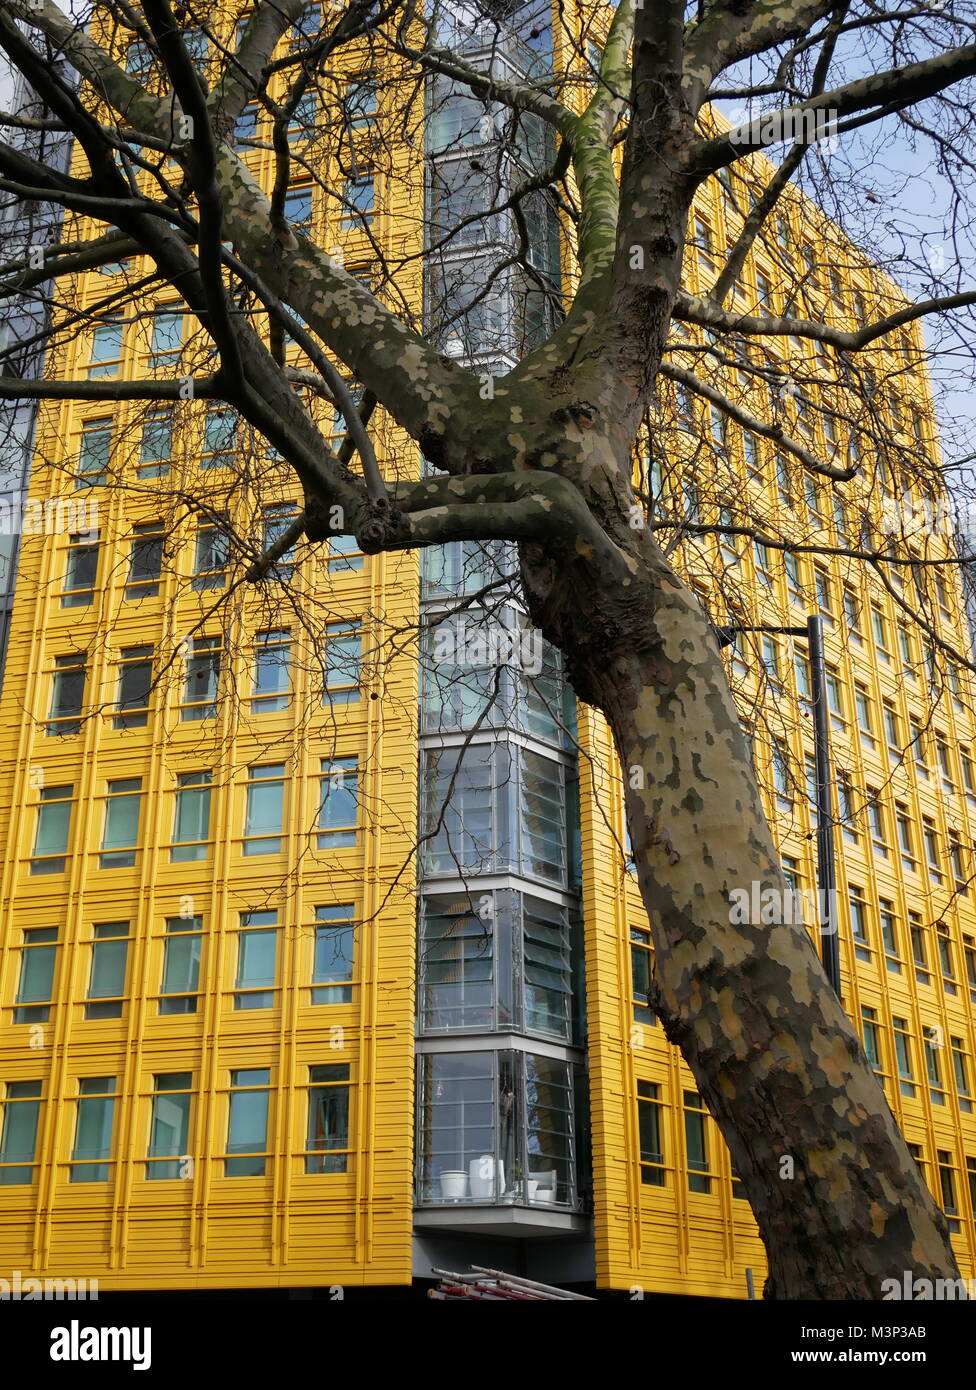 Yellow, corner office building and tree near Oxford Circus in London's West End. - Stock Image